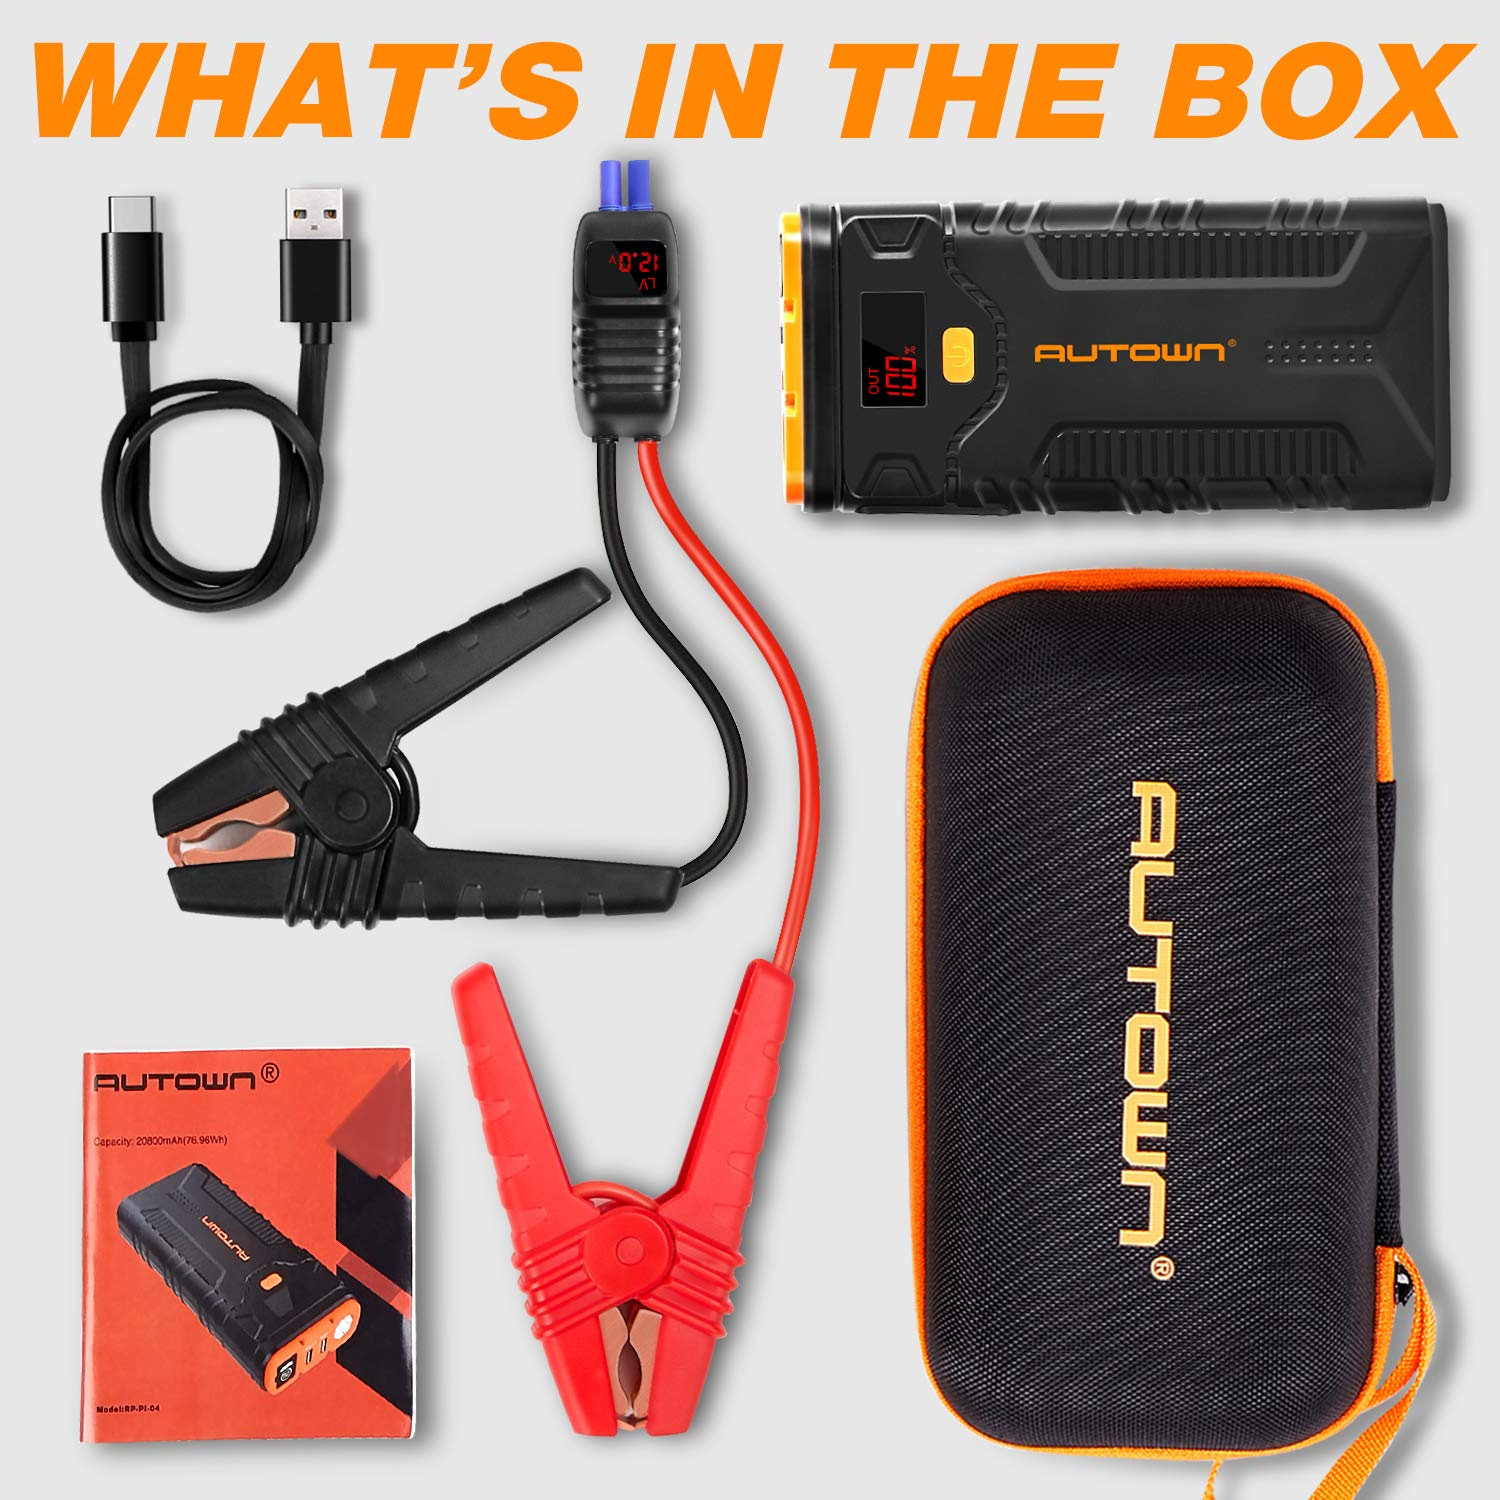 Up to 8.0L Gas//6.5L Diesel Engines QDSP 12V Auto Battery Booster Portable Power Pack with Built-in LED Light Jump Starter with Quick Charge 3.0 AUTOWN 2000A Peak 20800mAh Car Jump Starter